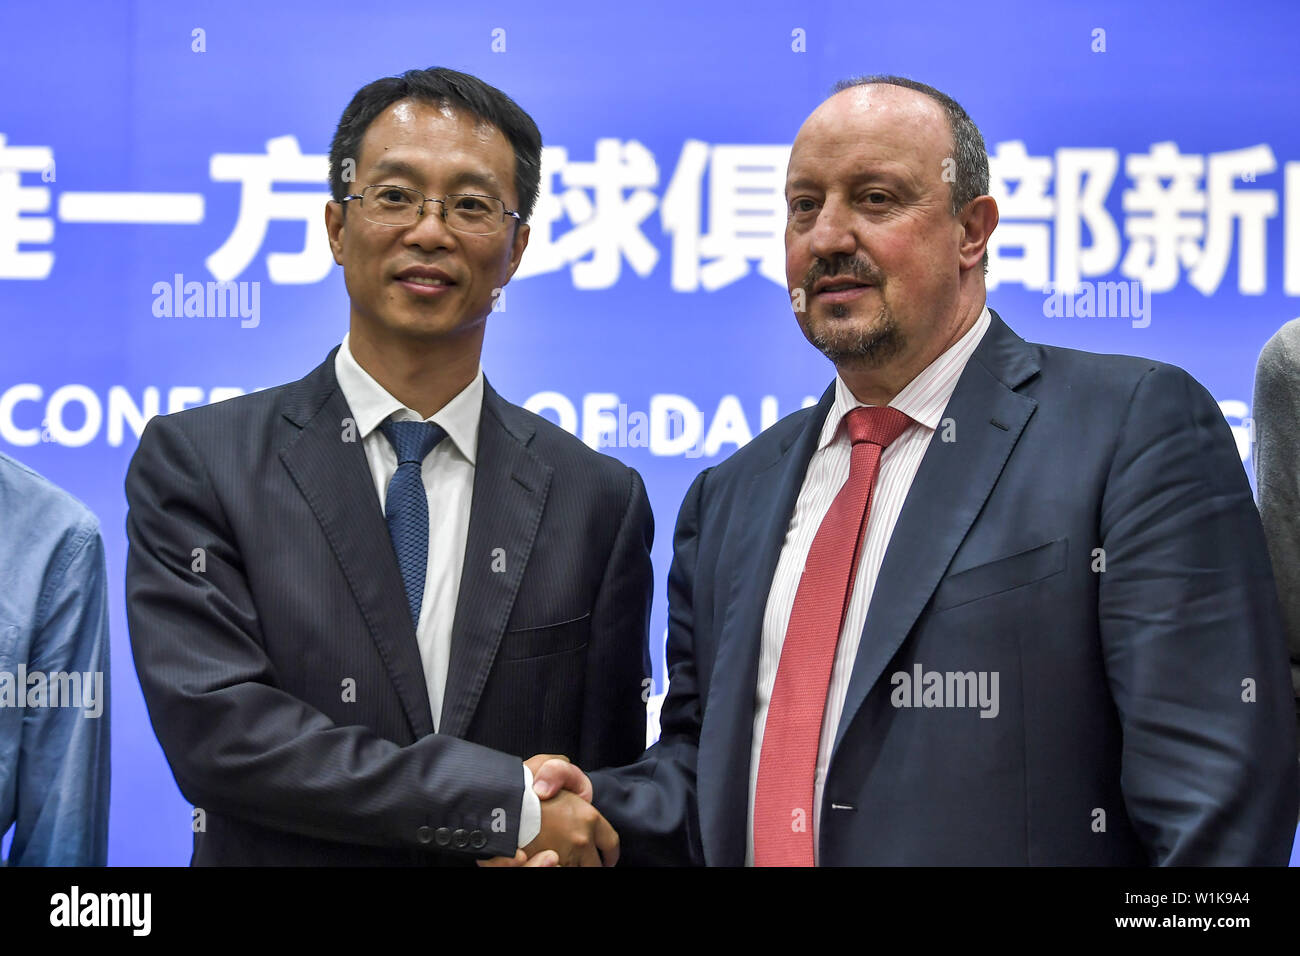 Spanish football manager Rafa Benitez, right, the new-appointed head coach of China's Dalian Yifang F.C., shakes hands with Zhang Lin, Chairman of Dalian Yifang F.C., during a press conference in Dalian city, northeast China's Liaoning province, 2 July 2019. Former Newcastle United manager Rafa Benitez is reportedly set to move to China to take charge of Chinese Super League side Dalian Yifang, after the departure of Choi Kang-hee. Sky Sports reported that the 59-year-old Spaniard has agreed a contract with Dalian which doubles the six million pounds a year he earned at St James's Park, and wi - Stock Image